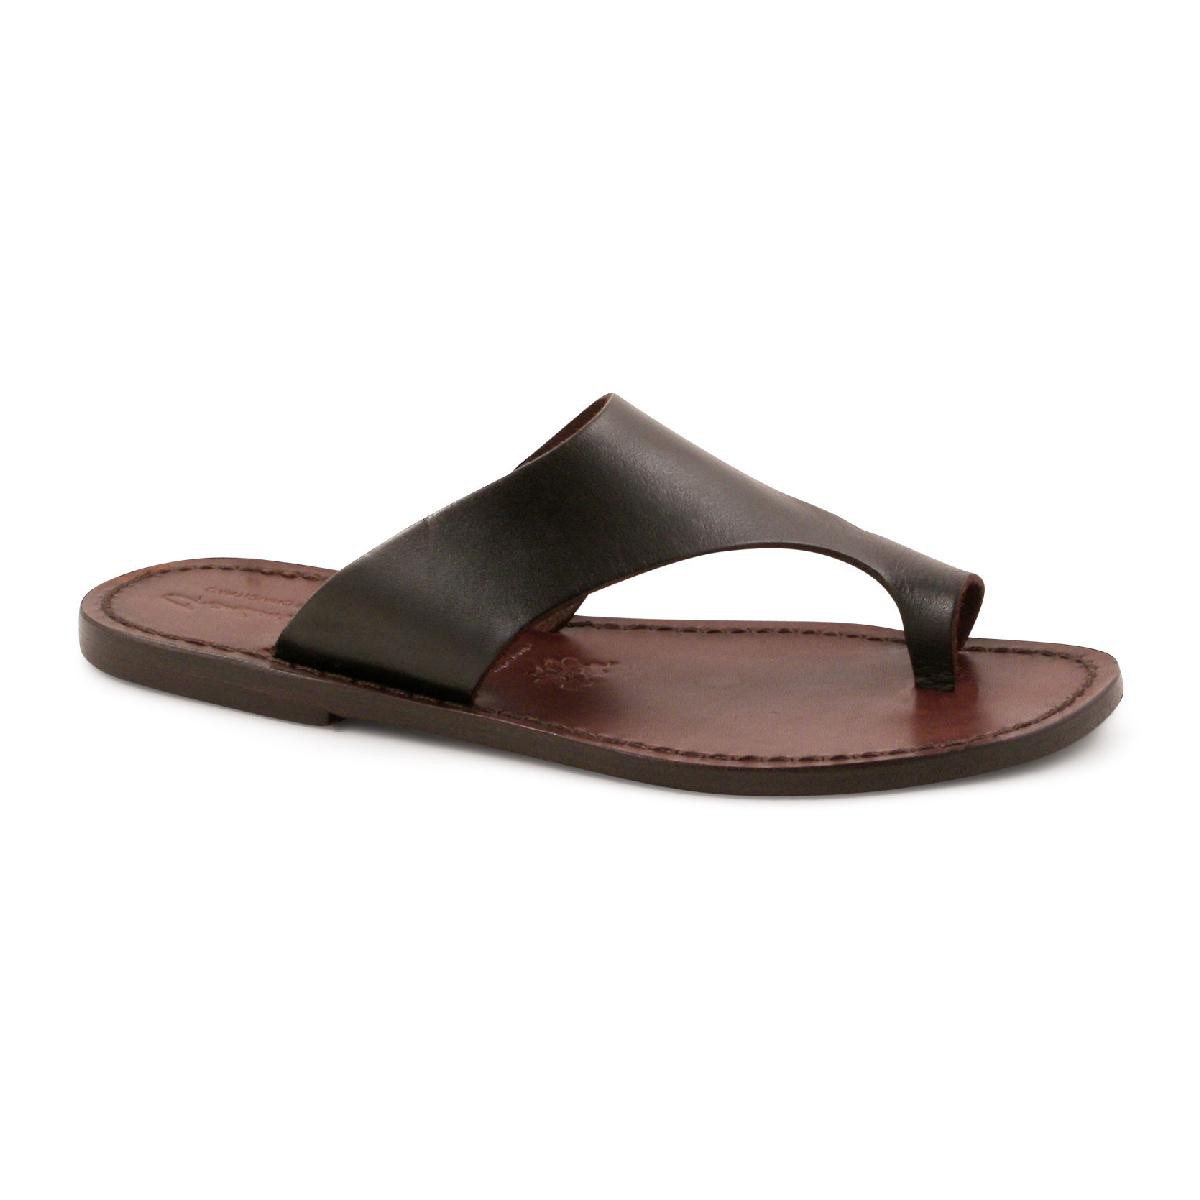 Simple Gentle Souls Bistro Leather Sandals (For Women) - Save 49%